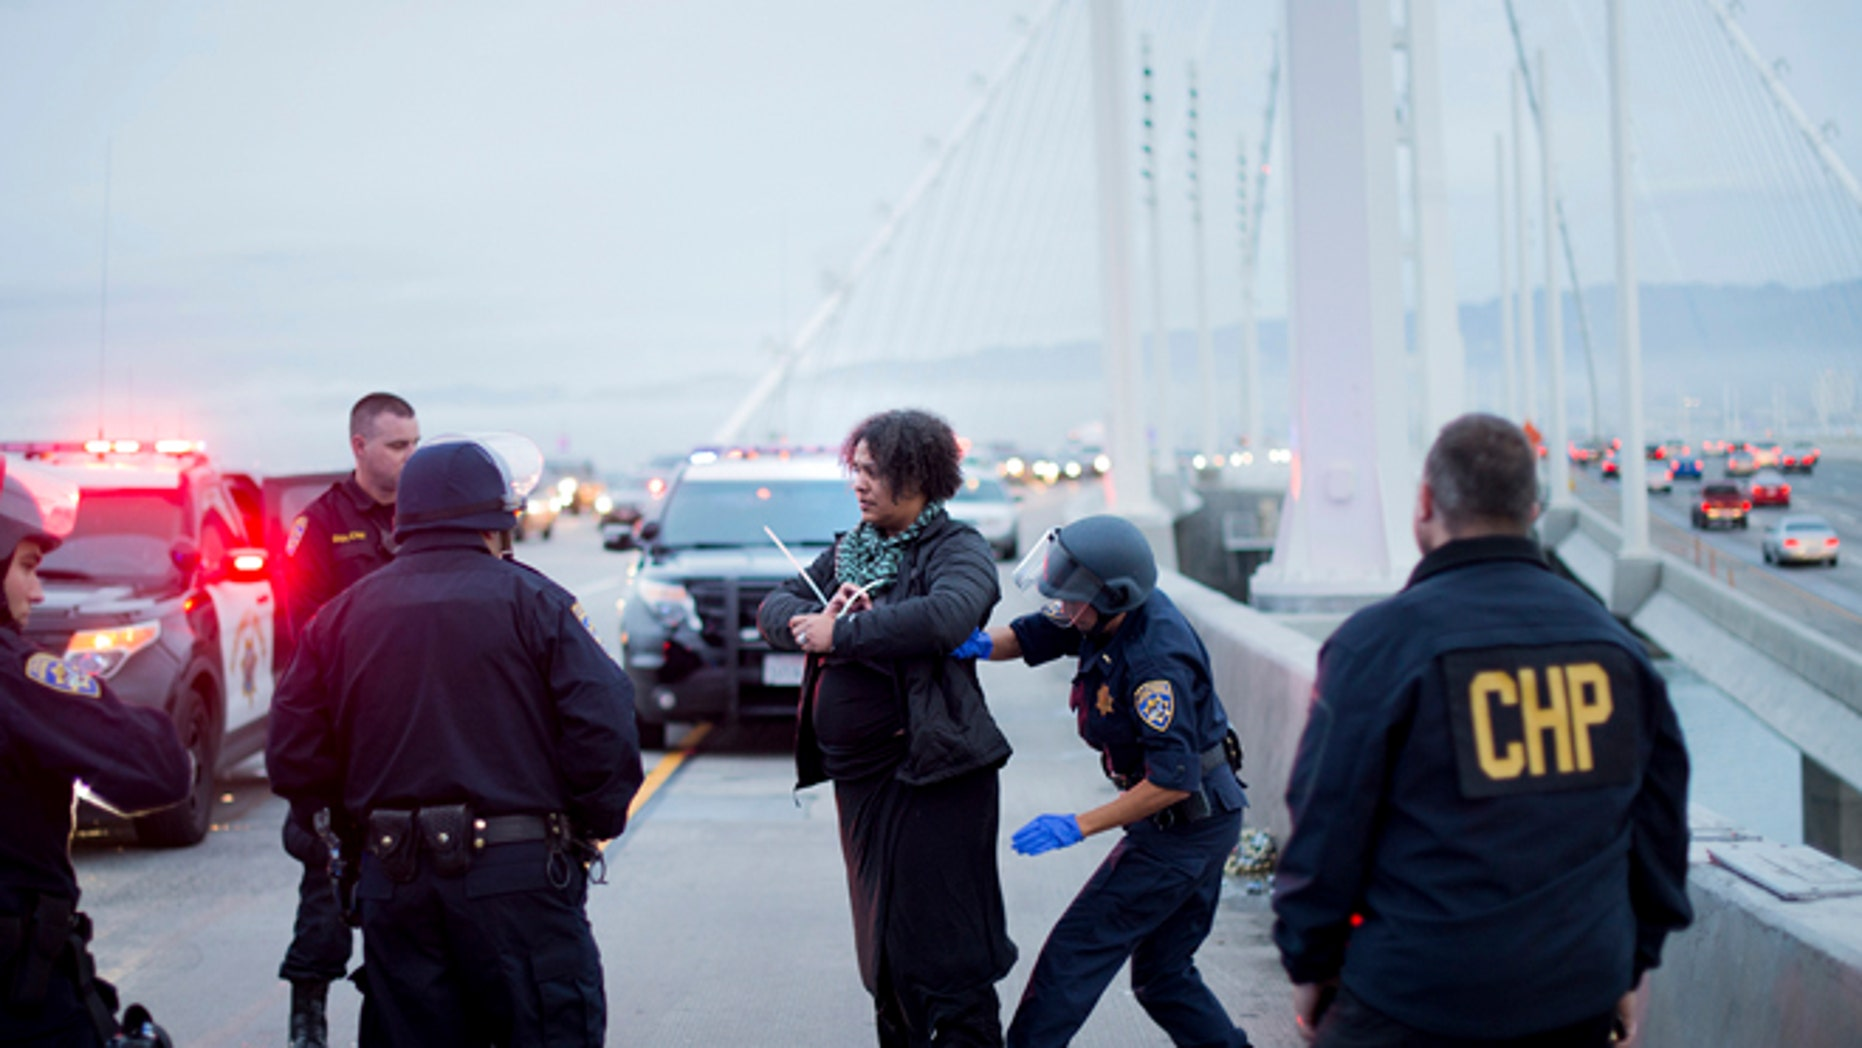 A California Highway Patrol officer detains a protester on the San Francisco-Oakland Bay Bridge, Monday, Jan. 18, 2016, in San Francisco. A group of protesters from the group Black Lives Matter caused the shutdown of one side of the bridge in a police-brutality protest tied to the Rev. Martin Luther King Jr. holiday. (AP Photo/Noah Berger)